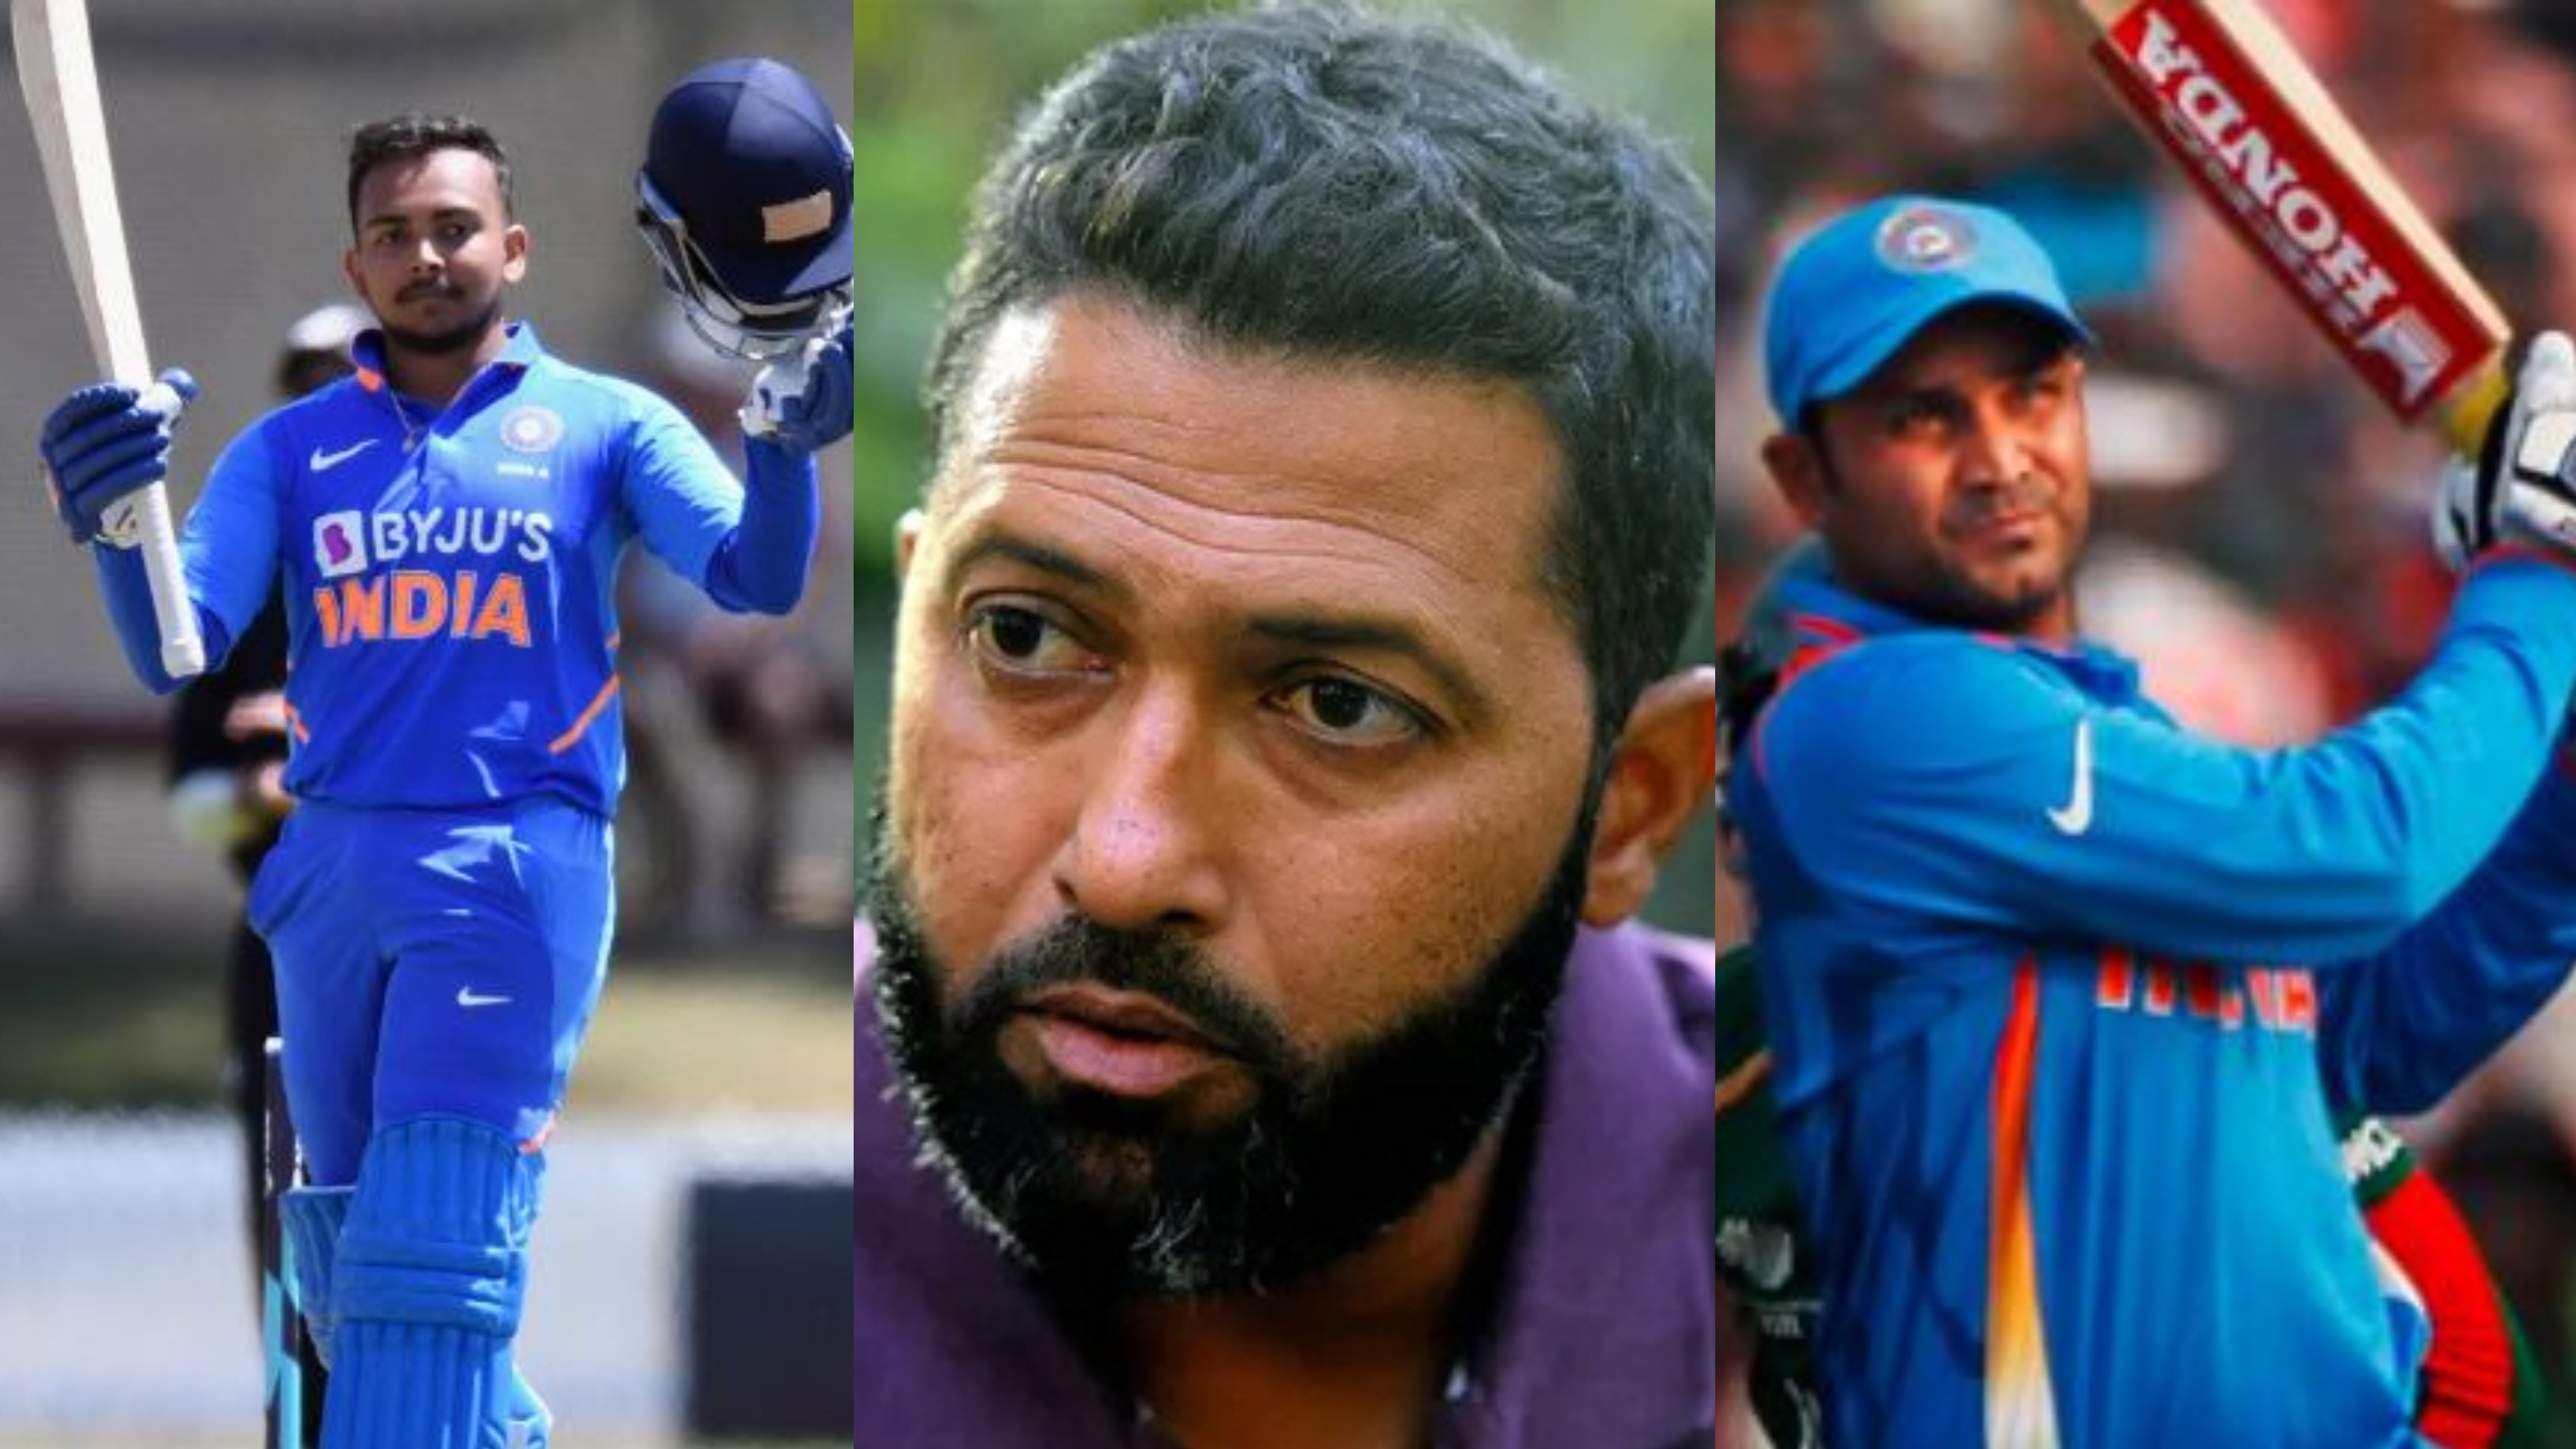 Prithvi Shaw has ability of Virender Sehwag but needs more discipline, says Wasim Jaffer